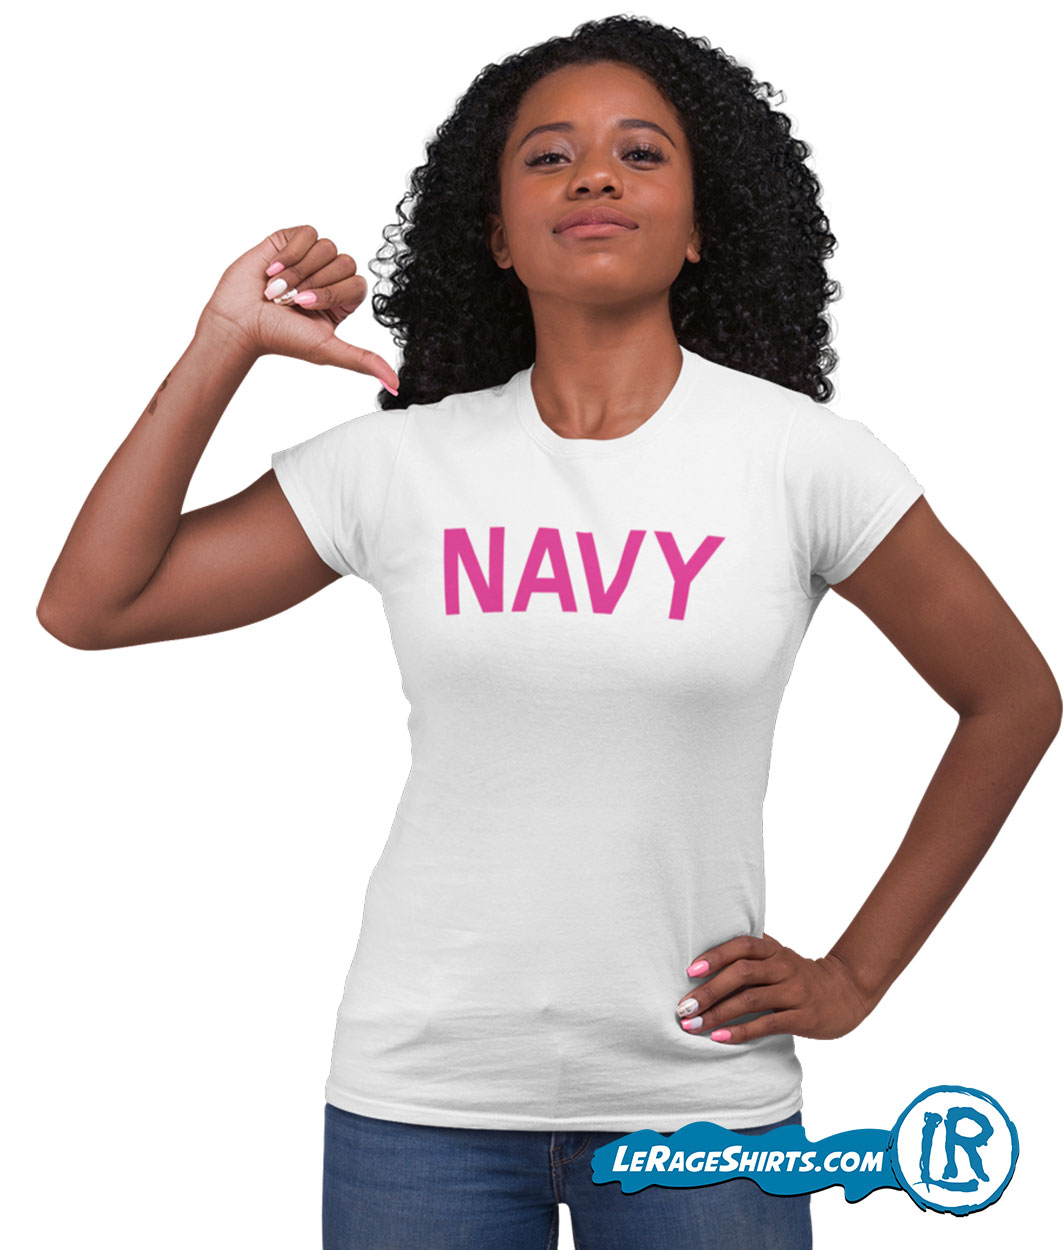 Navy T Shirt for women White with pink letters For Veterans Day Gift By LeRage Shirts Front image